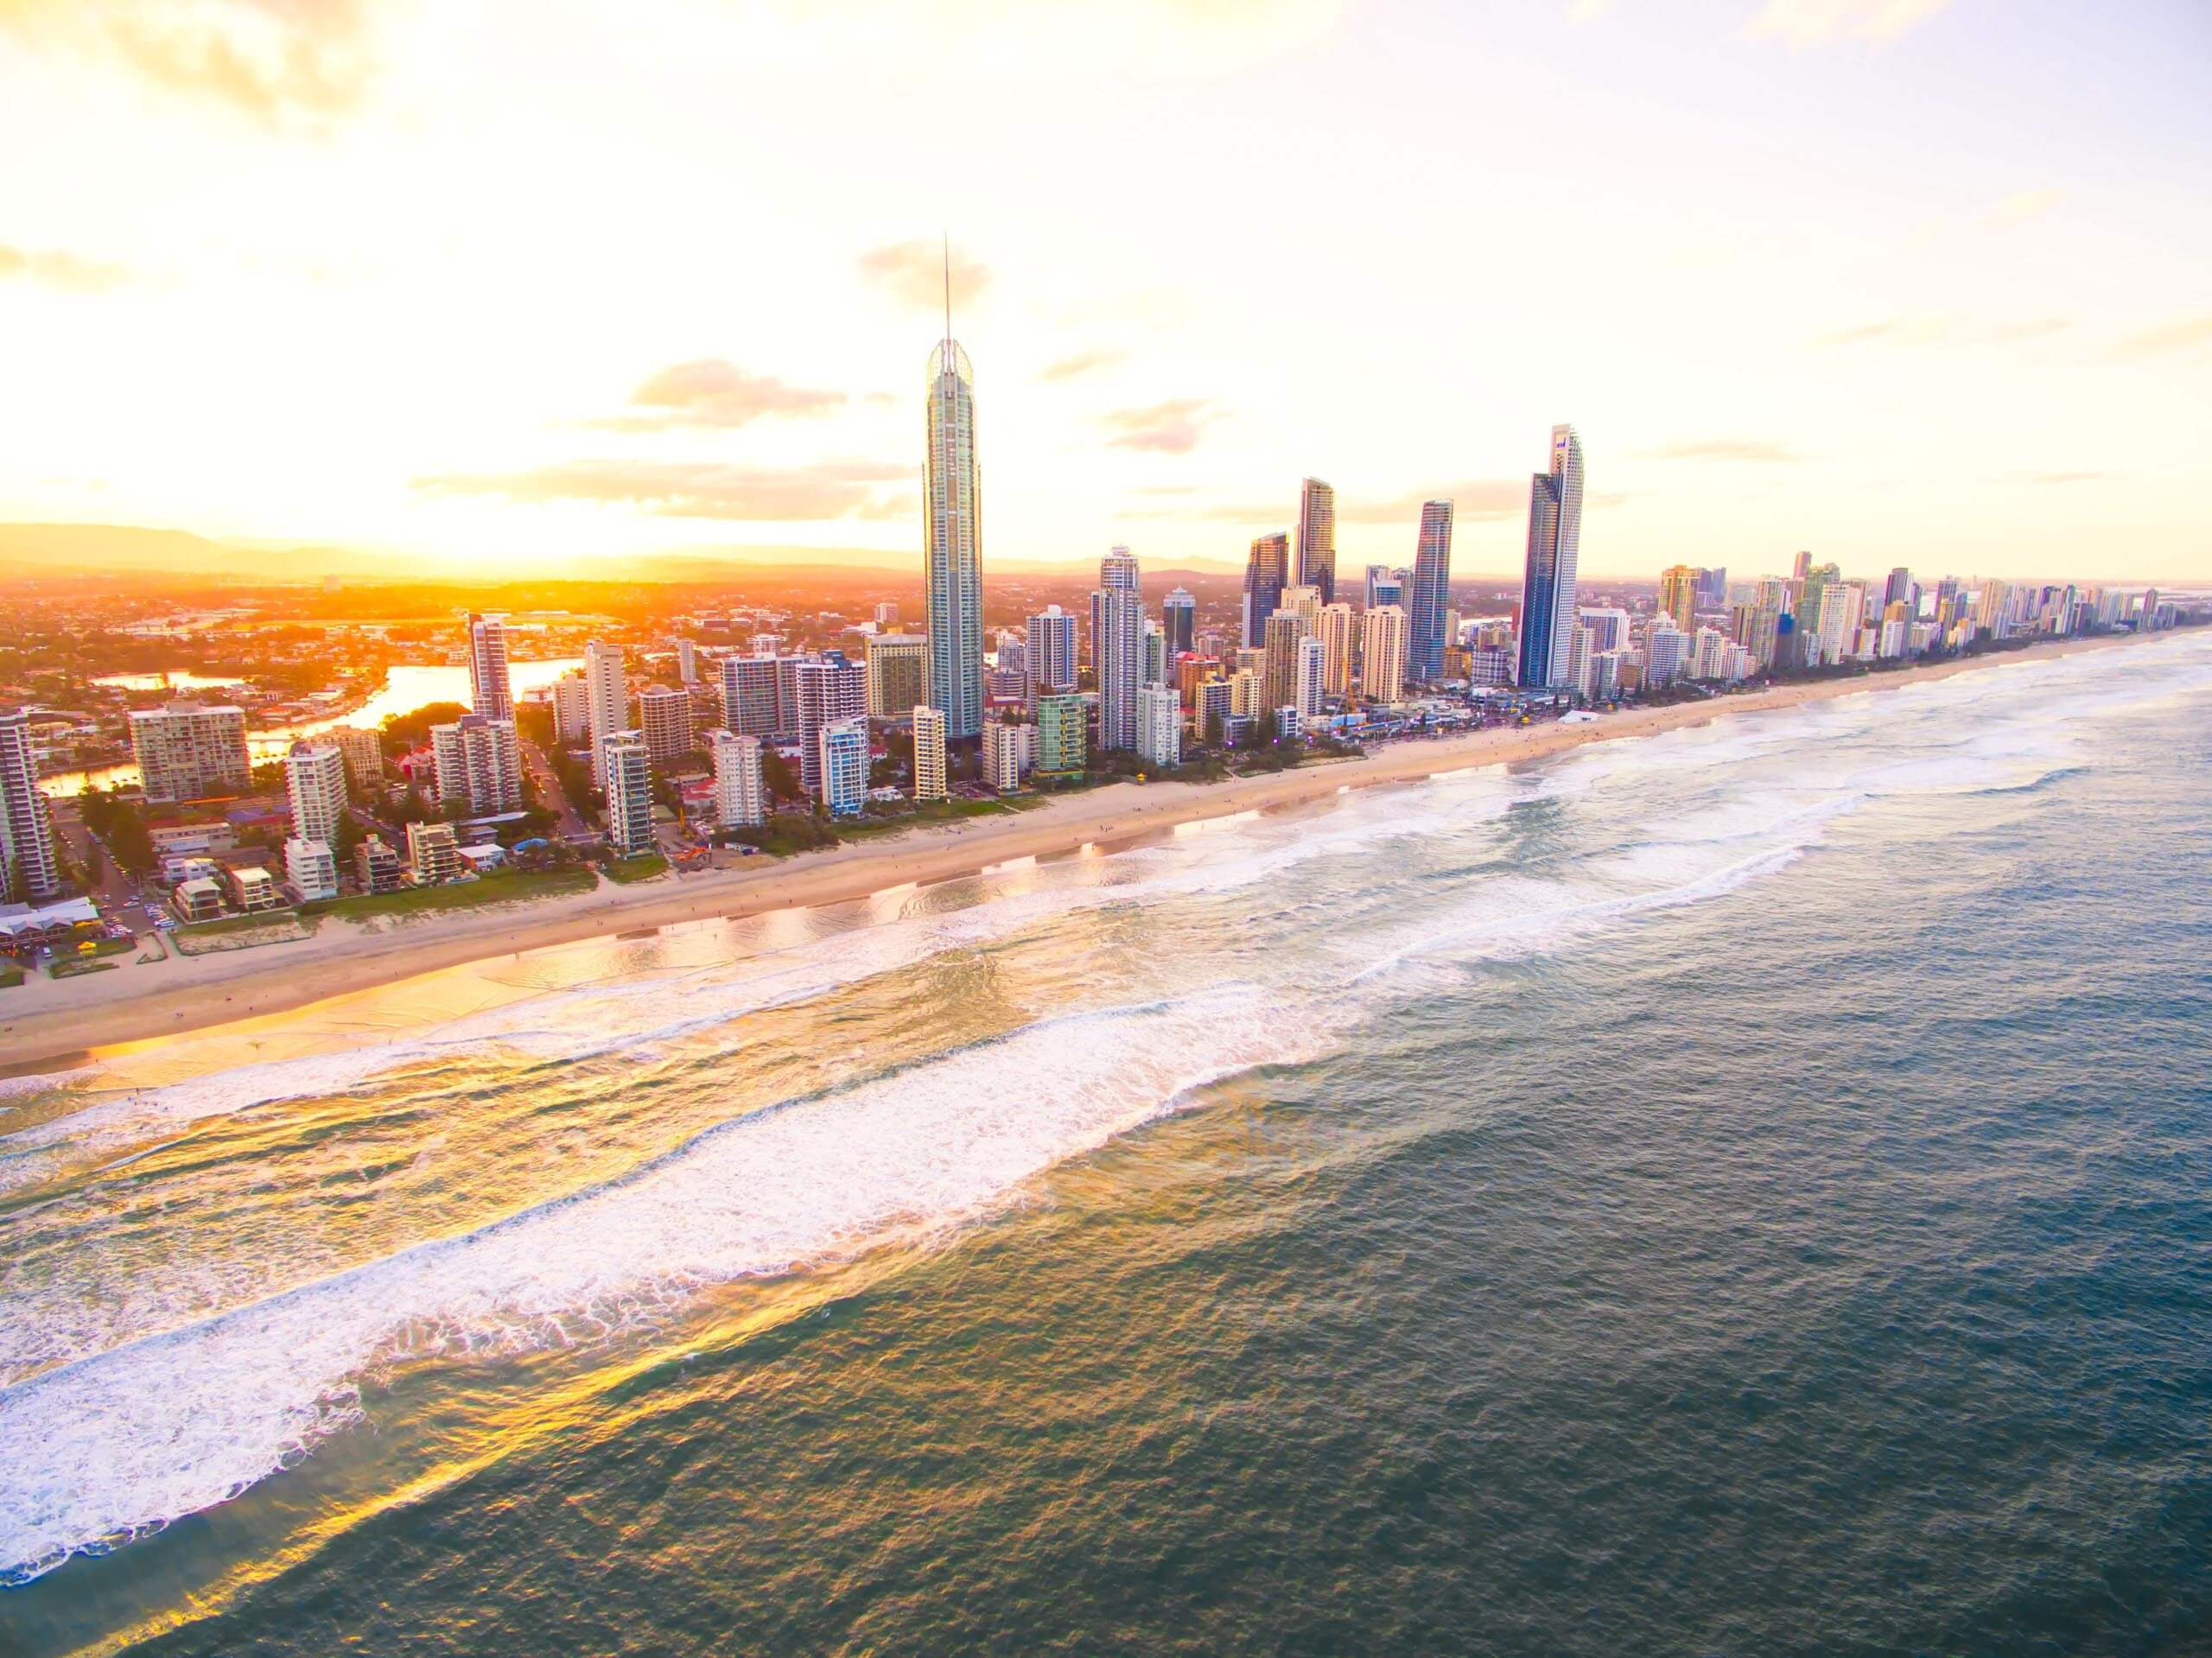 An aerial view at sunset of Surfers Paradise on Queensland's Gold Coast in Australia